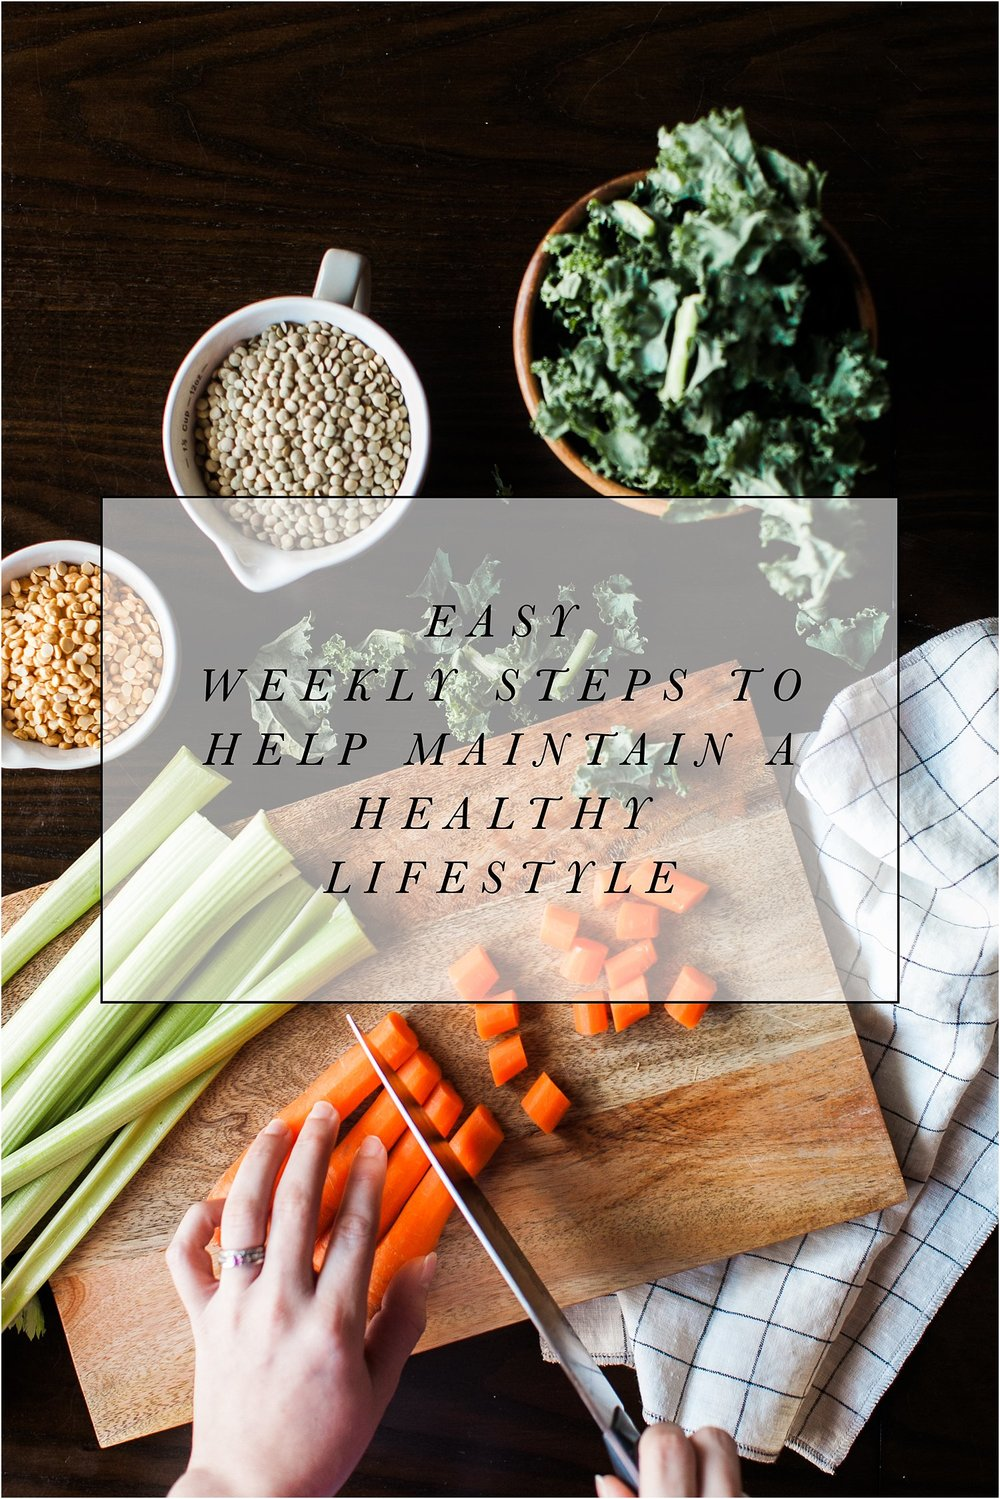 Easy Weekly Steps to Help Maintain a Healthy Lifestyle | Feast & Dwell